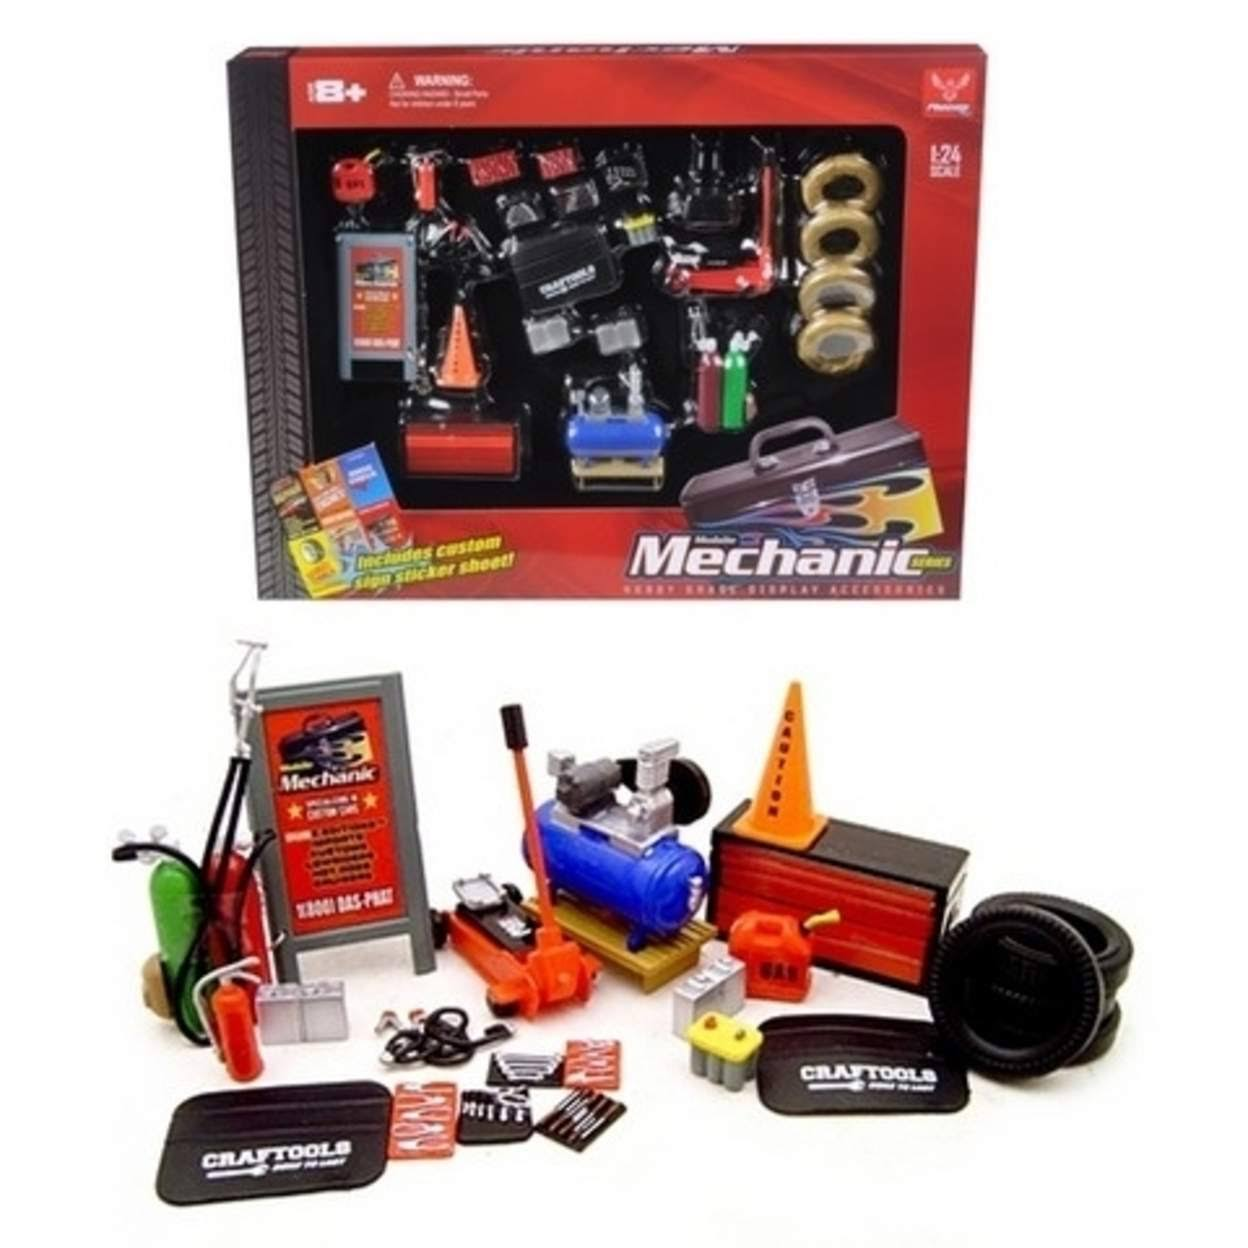 Mechanic Accessories Set Hobby Gear G Model Train and Car Accessories - 1:24 Scale